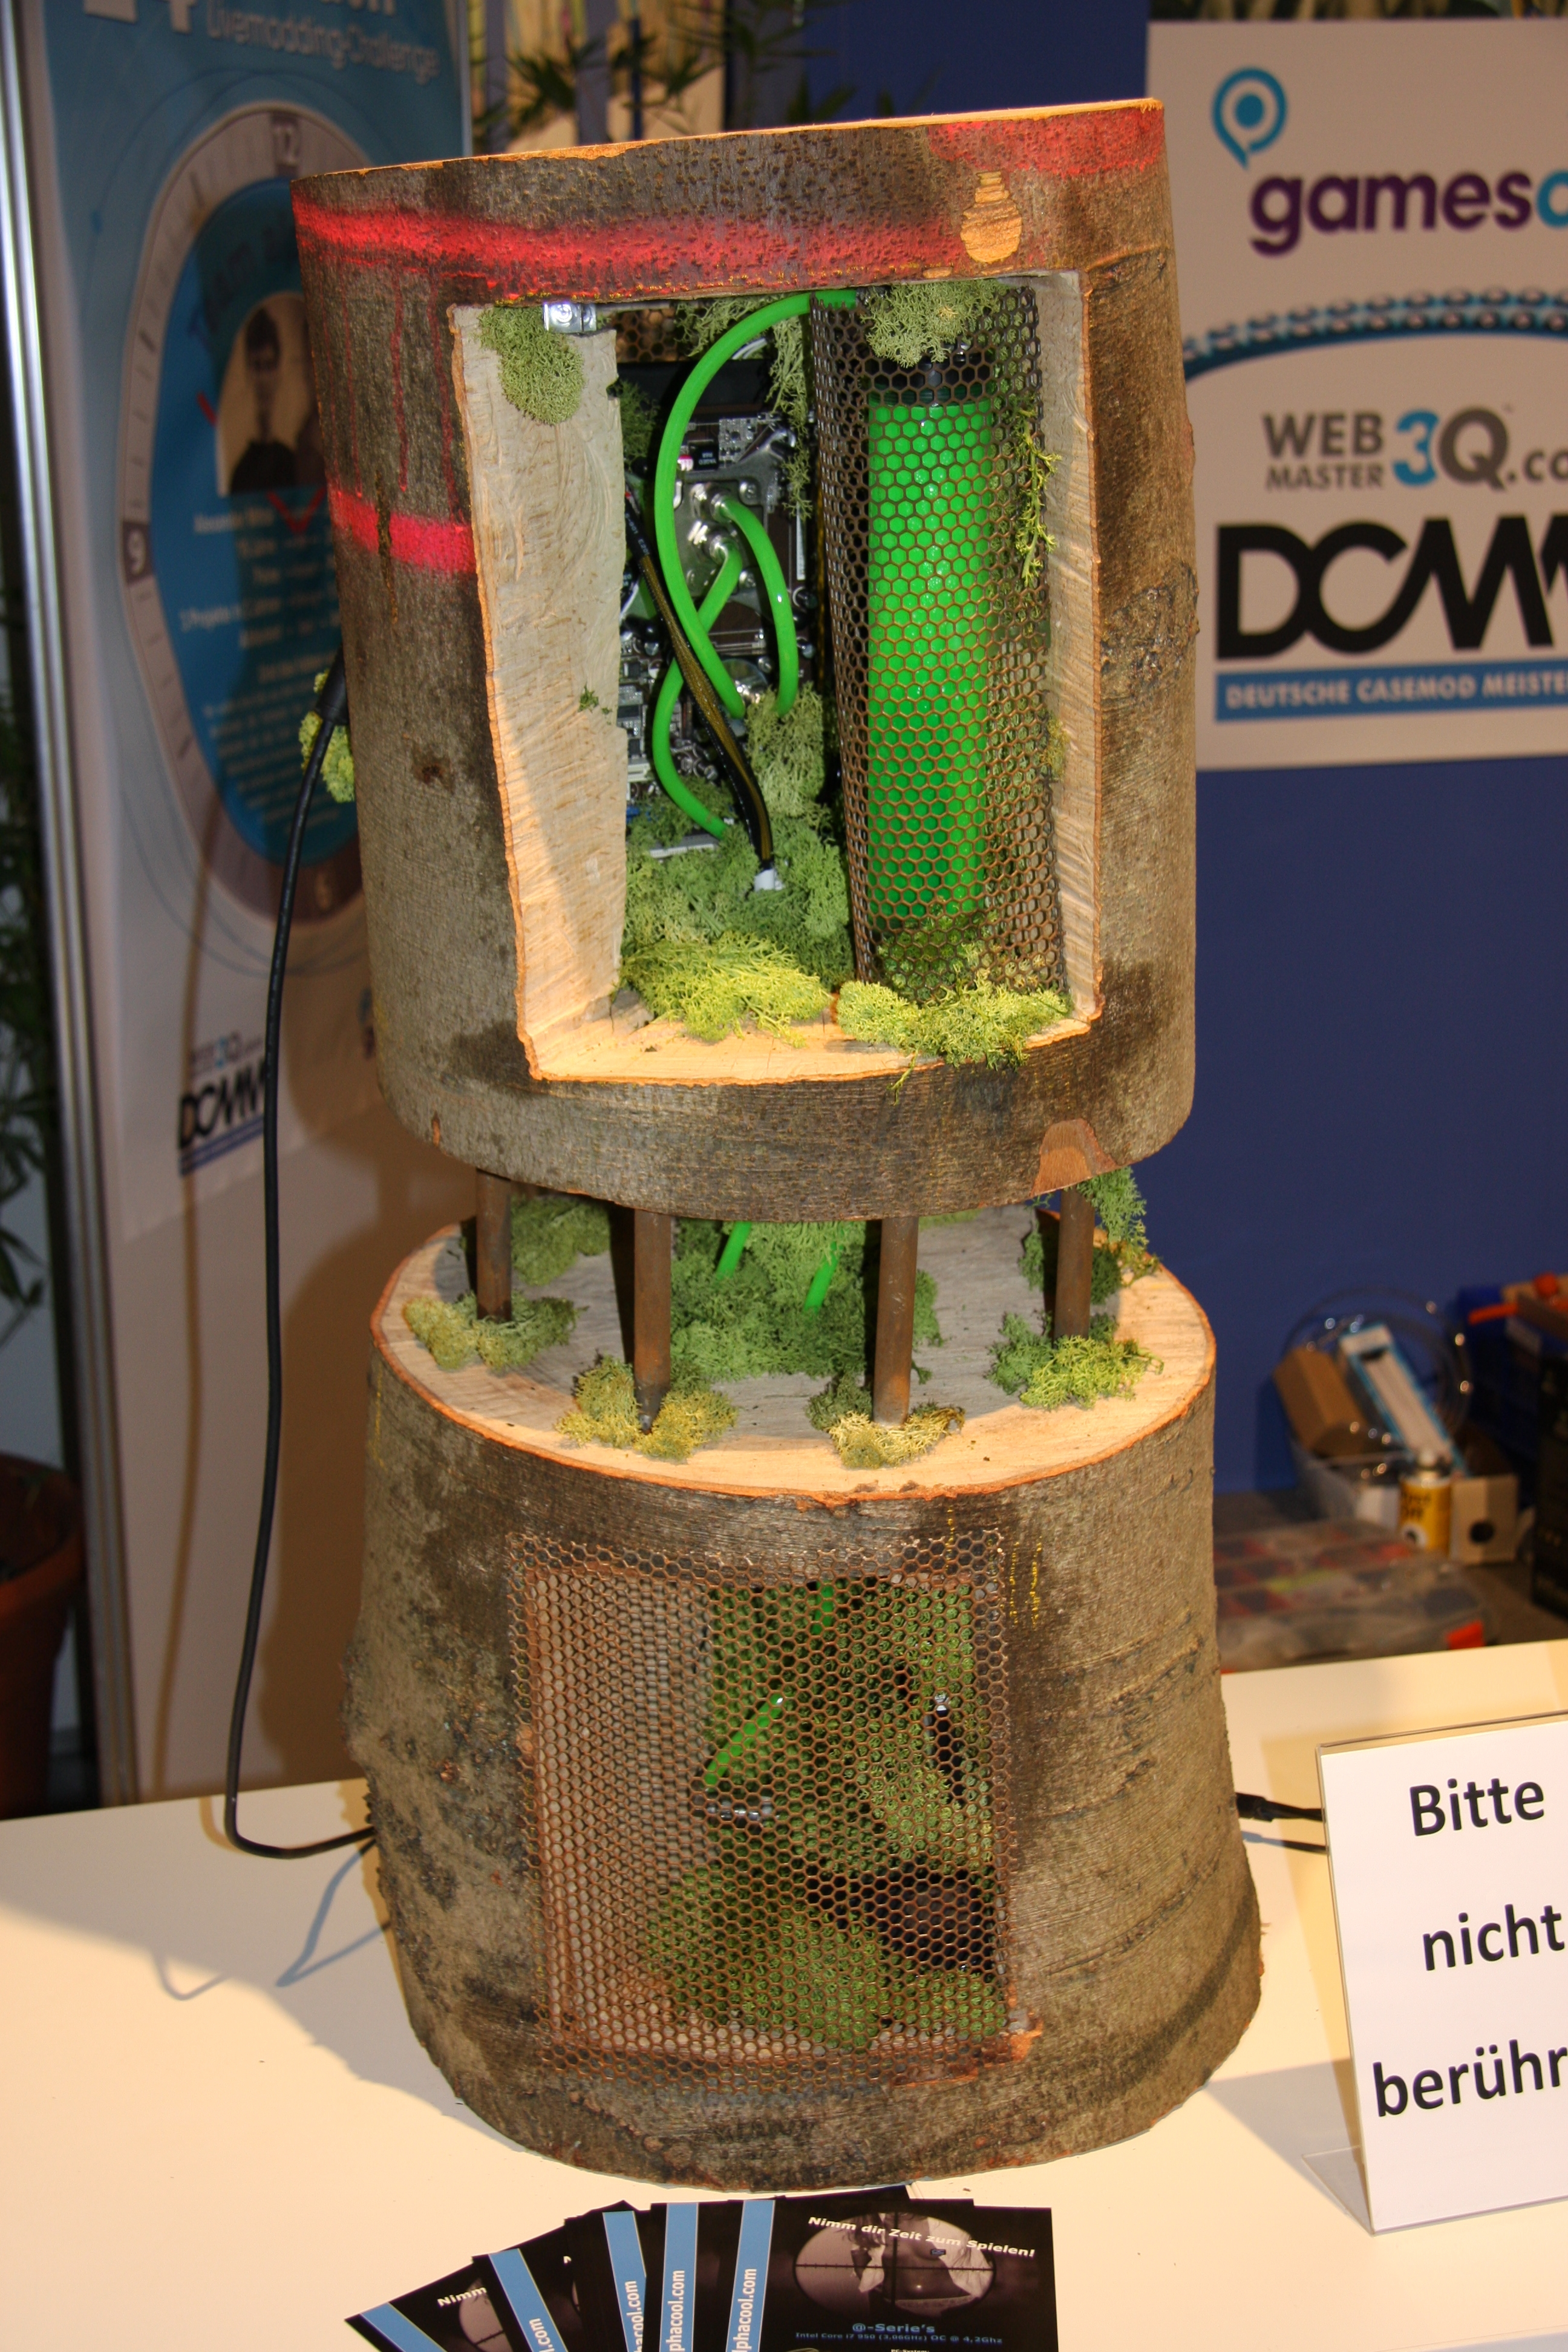 File:Case modding-PC case - gamescom 2009 PNr°0141 JPG